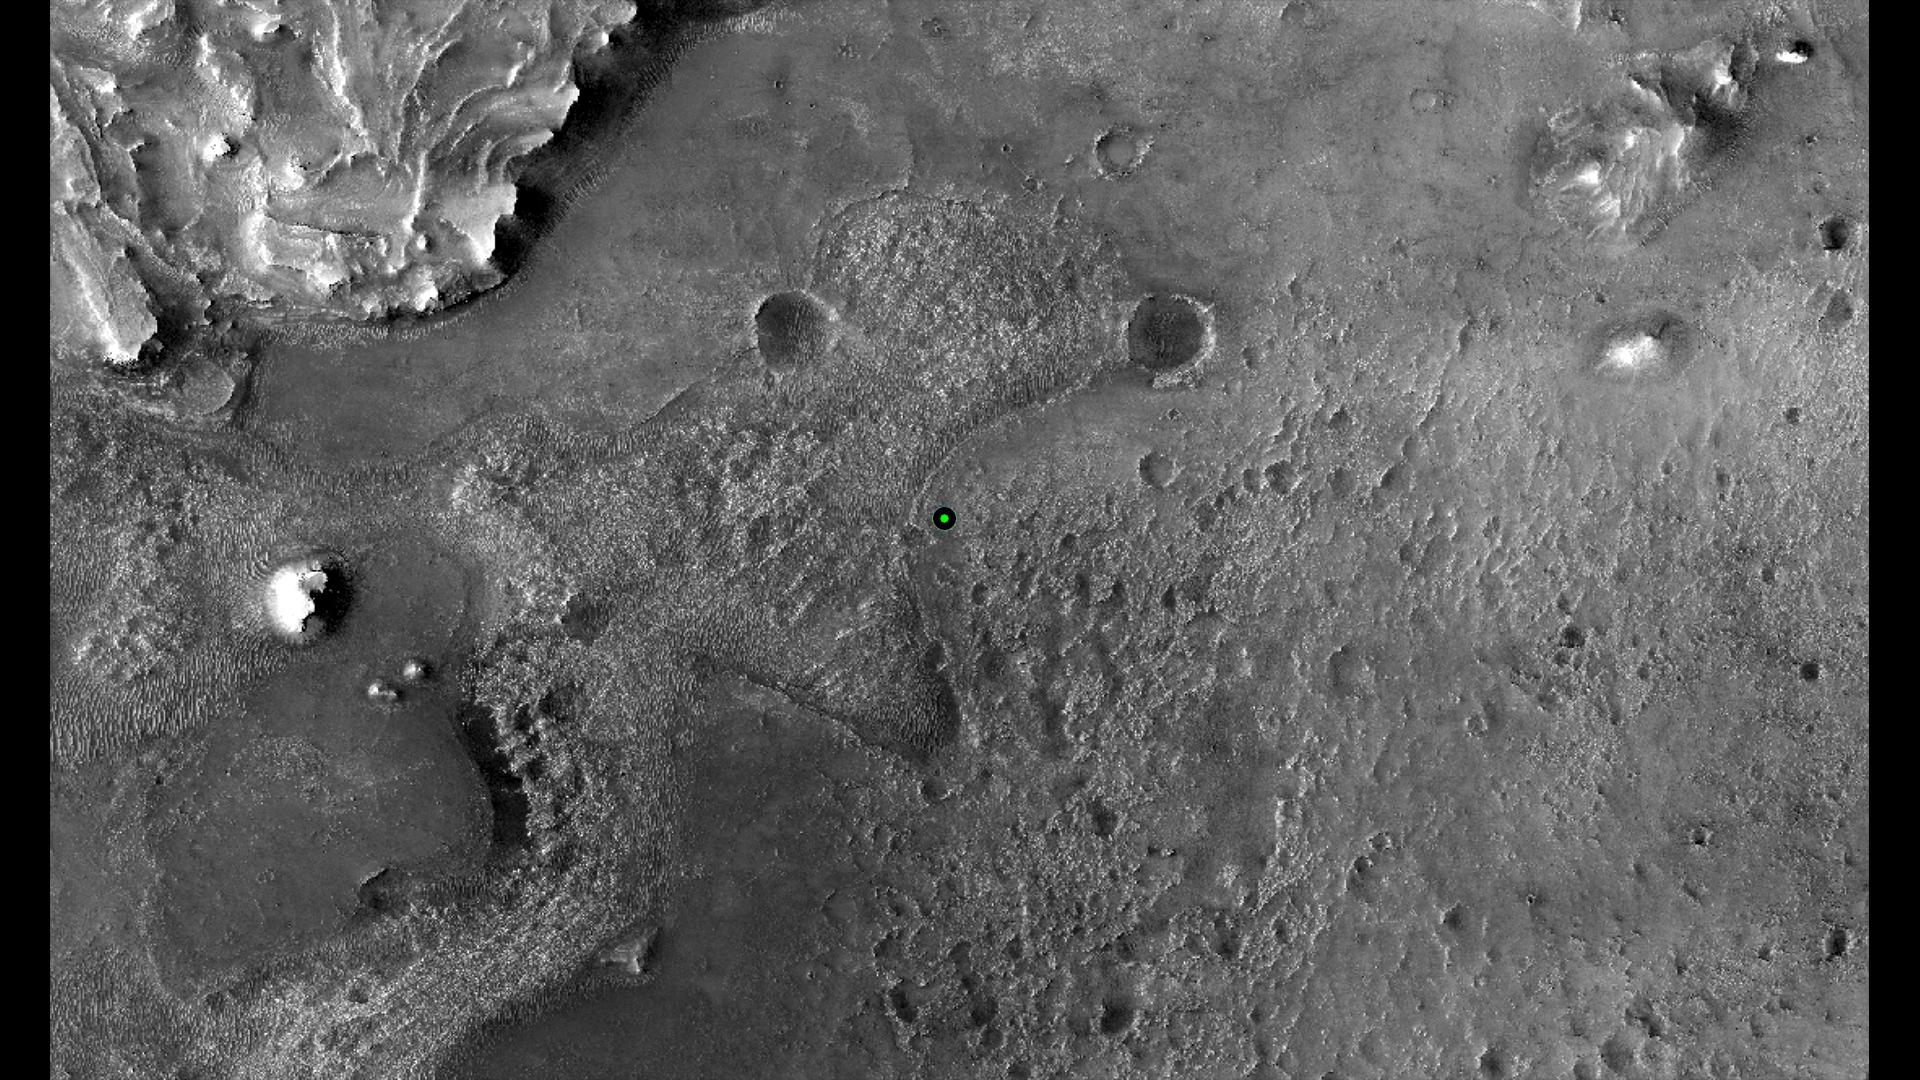 This image shows with a green dot where NASAs Perseverance rover landed in Jezero Crater on Mars on Feb. 18, 2021. The base image was taken by the HiRISE camera aboard NASAs Mars Reconnaissance Orbiter.